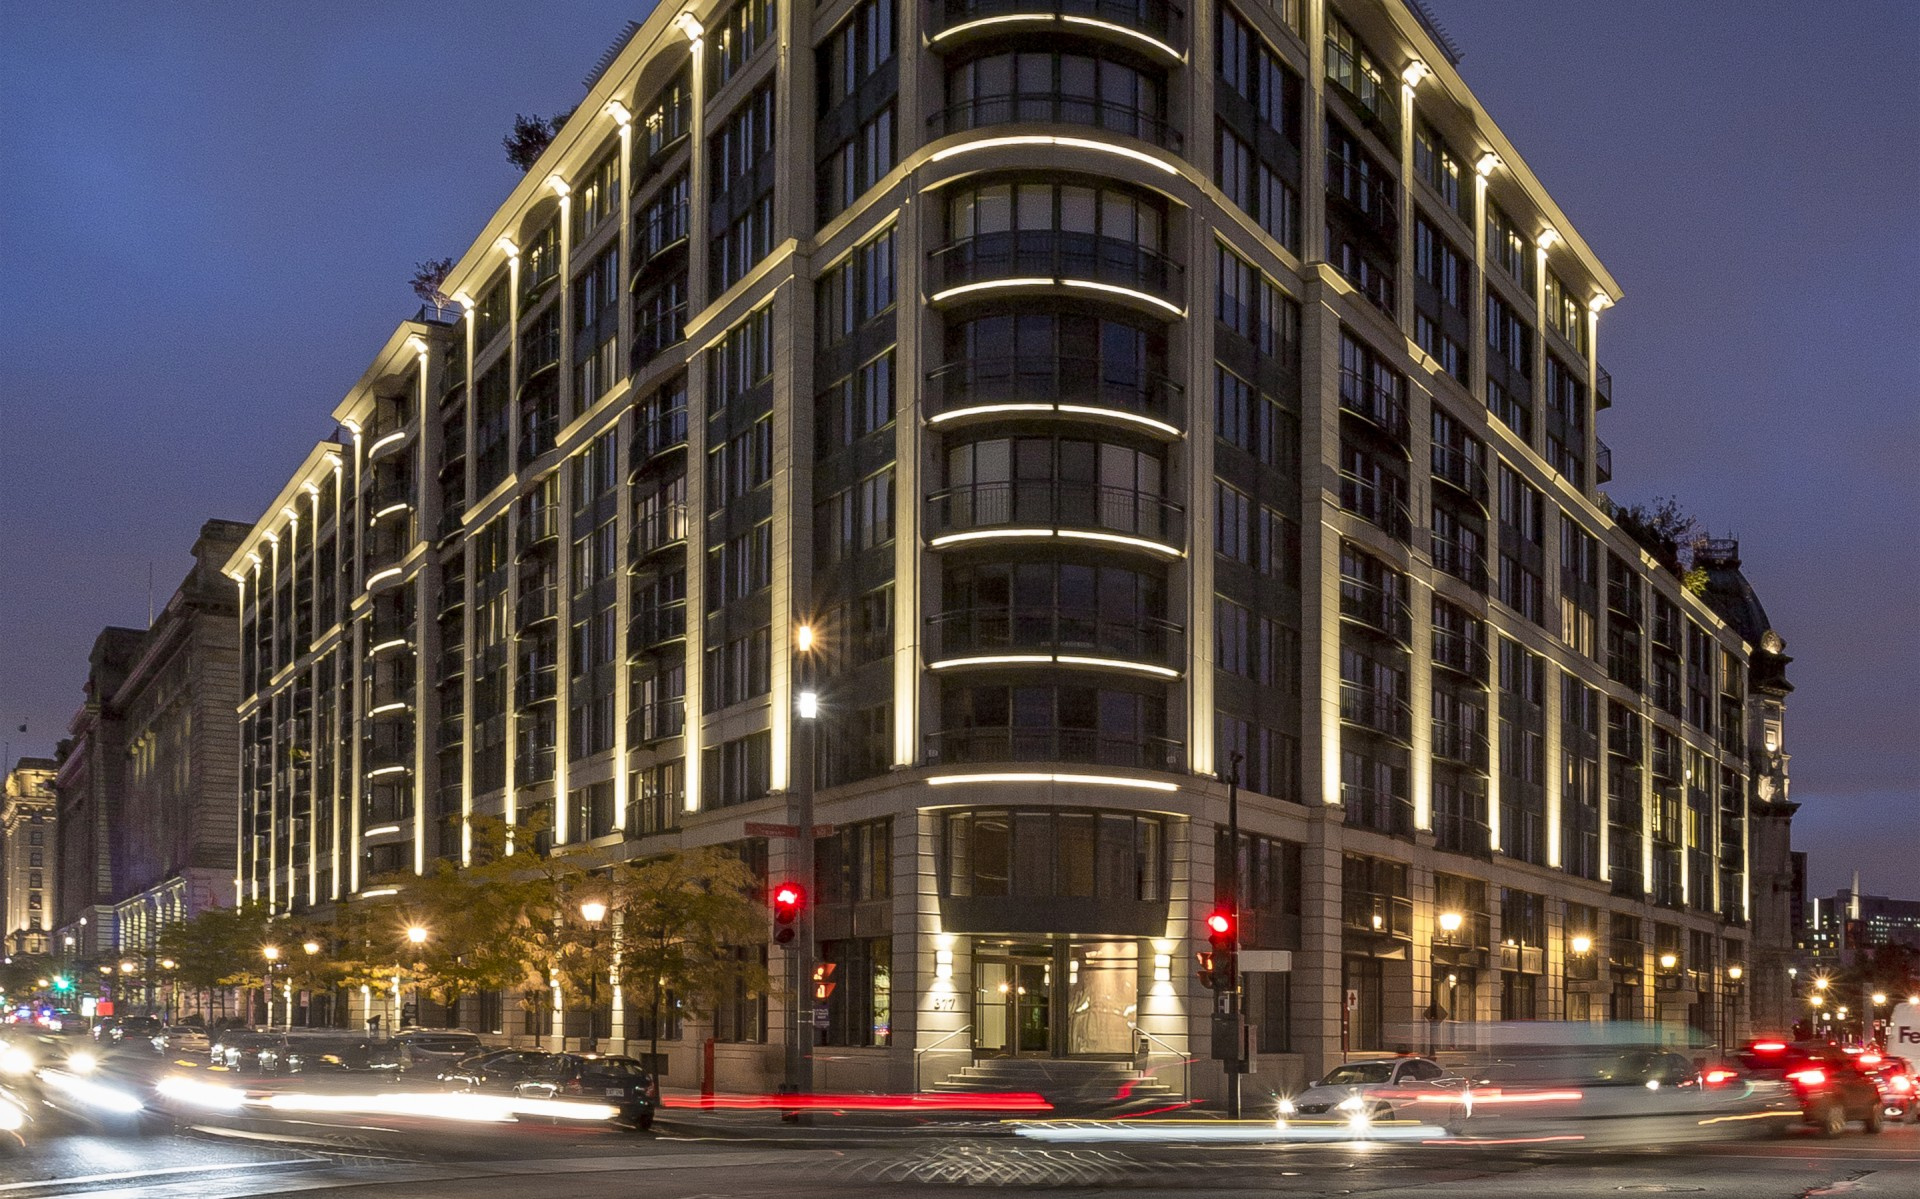 The Lumenfacade luminaires  create a unified, fluid look across the building's façade. – Ombrages